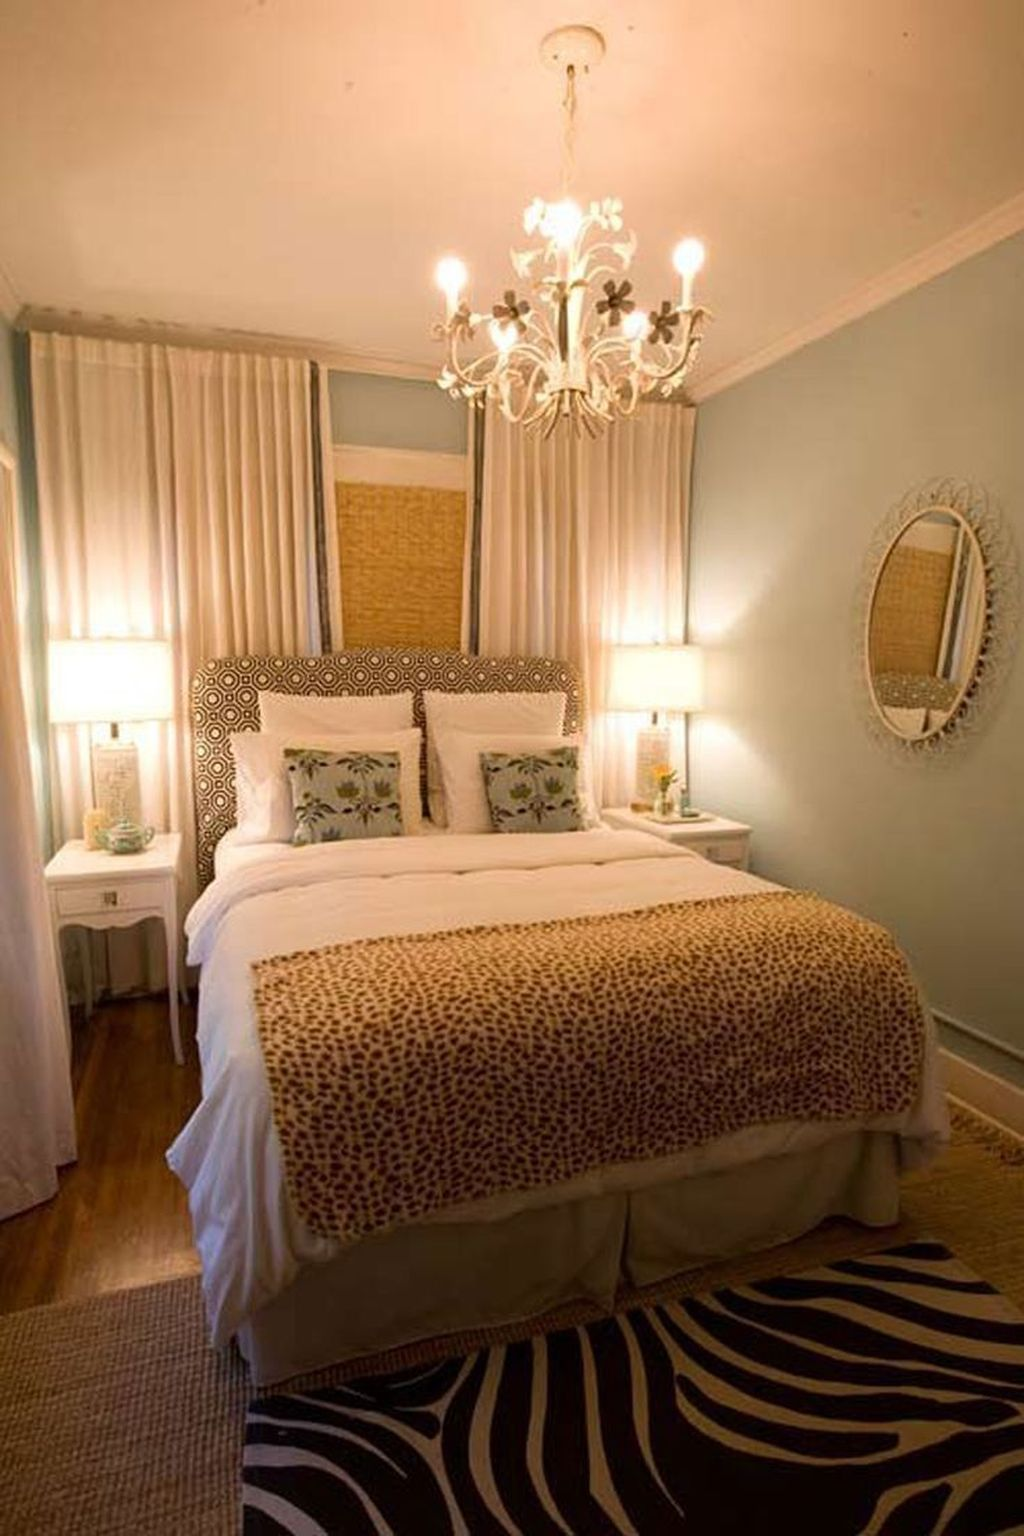 Cool 34 The Best Small Bedroom Ideas For Couples | Sovrum ...